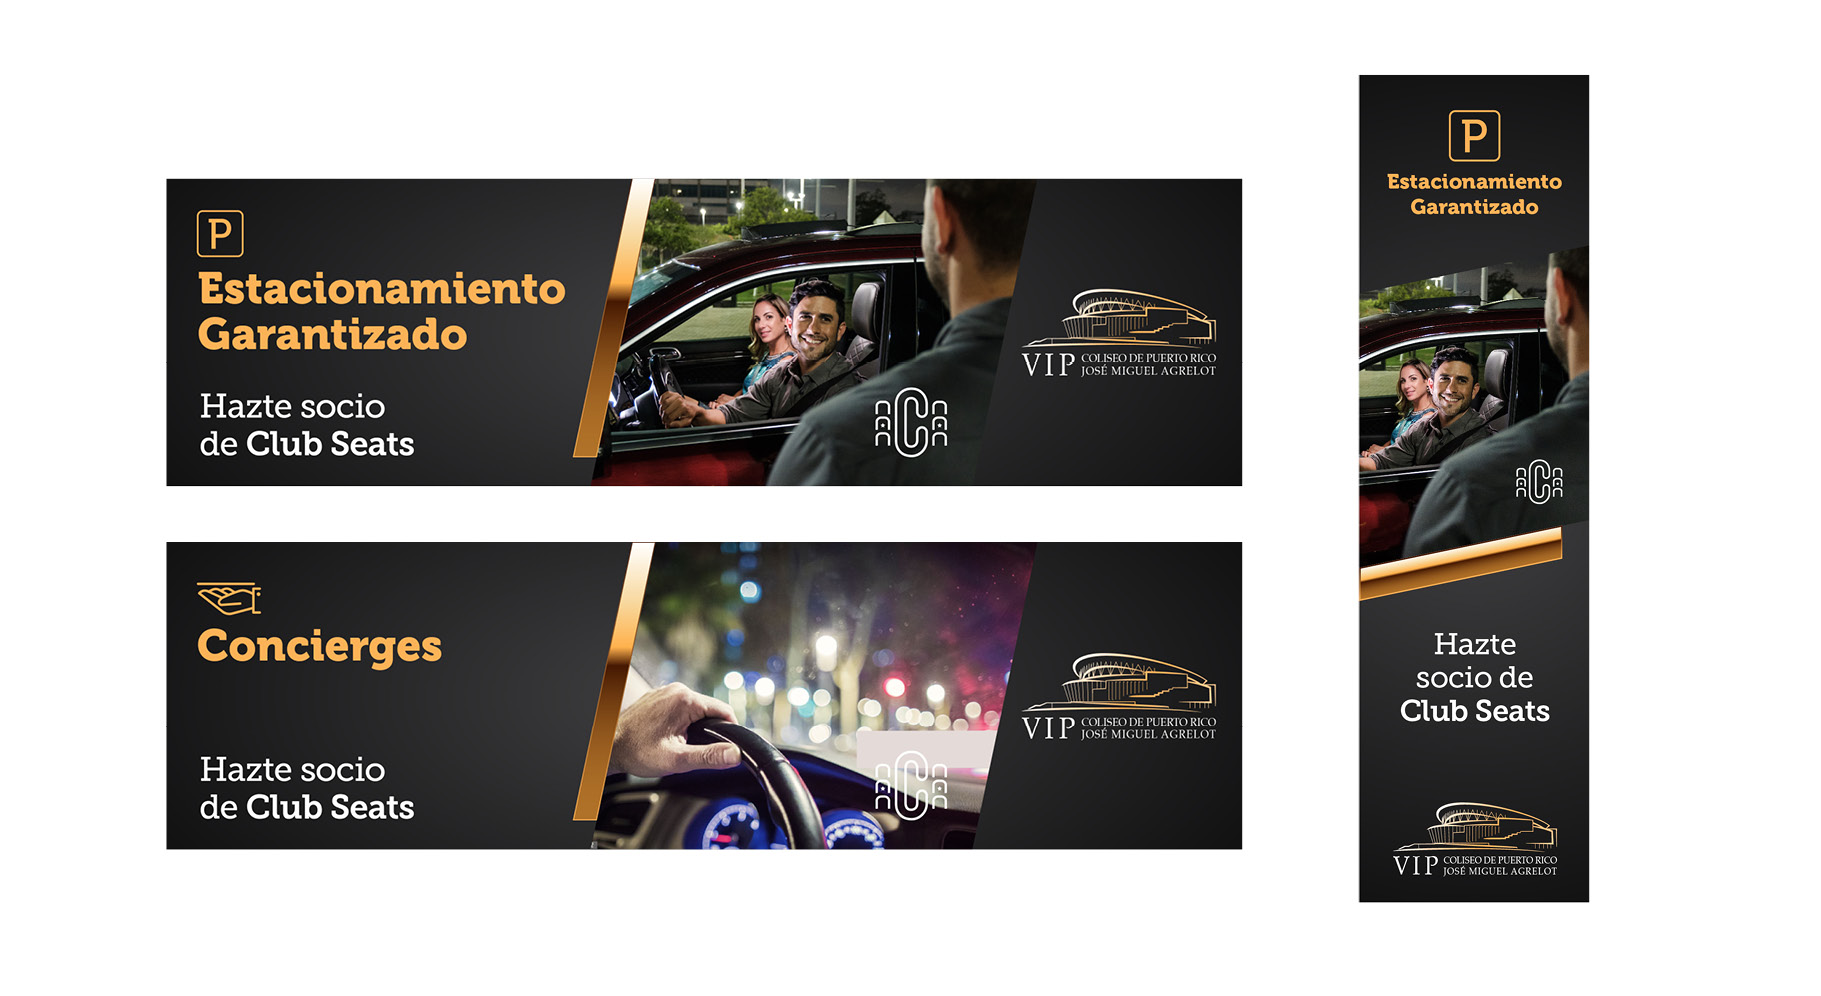 Campaña Clubseats